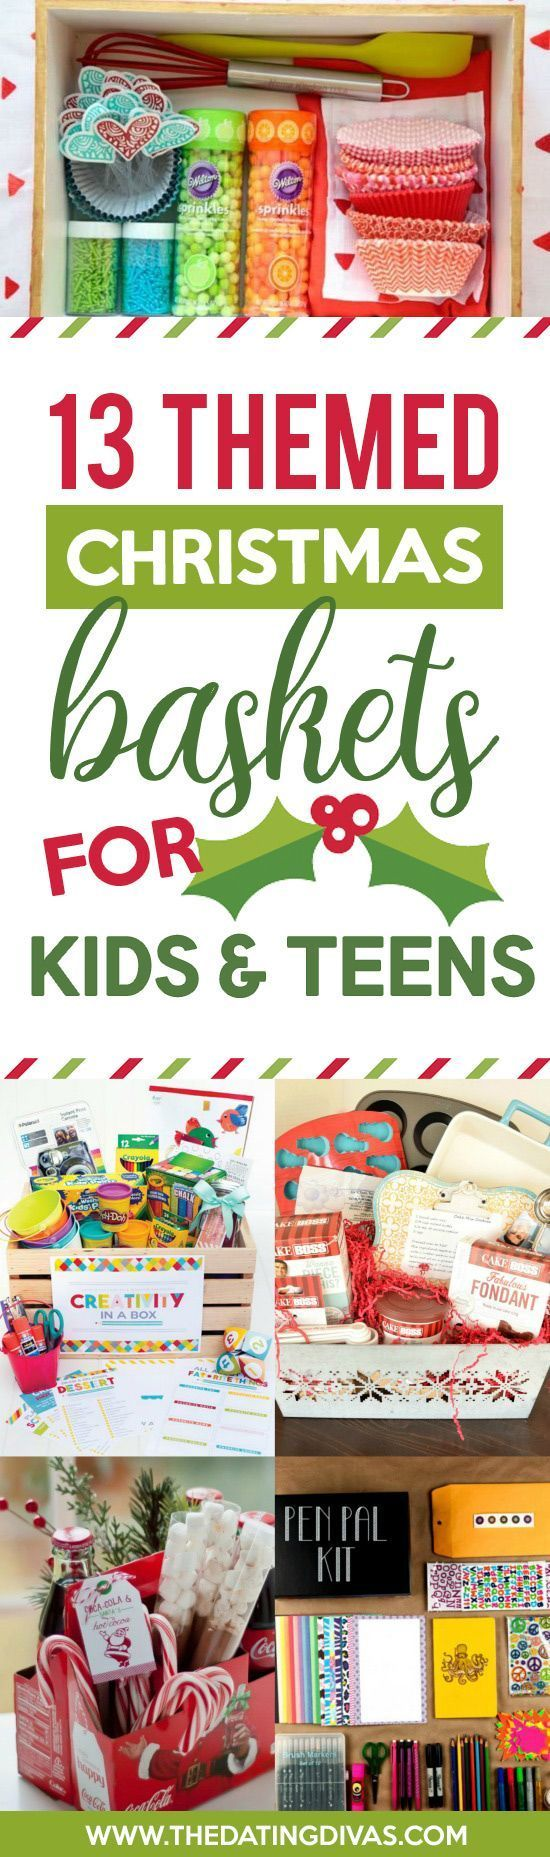 Need some gift ideas for kids and teens? These themed gift baskets are just the ticket! Something for everyone!